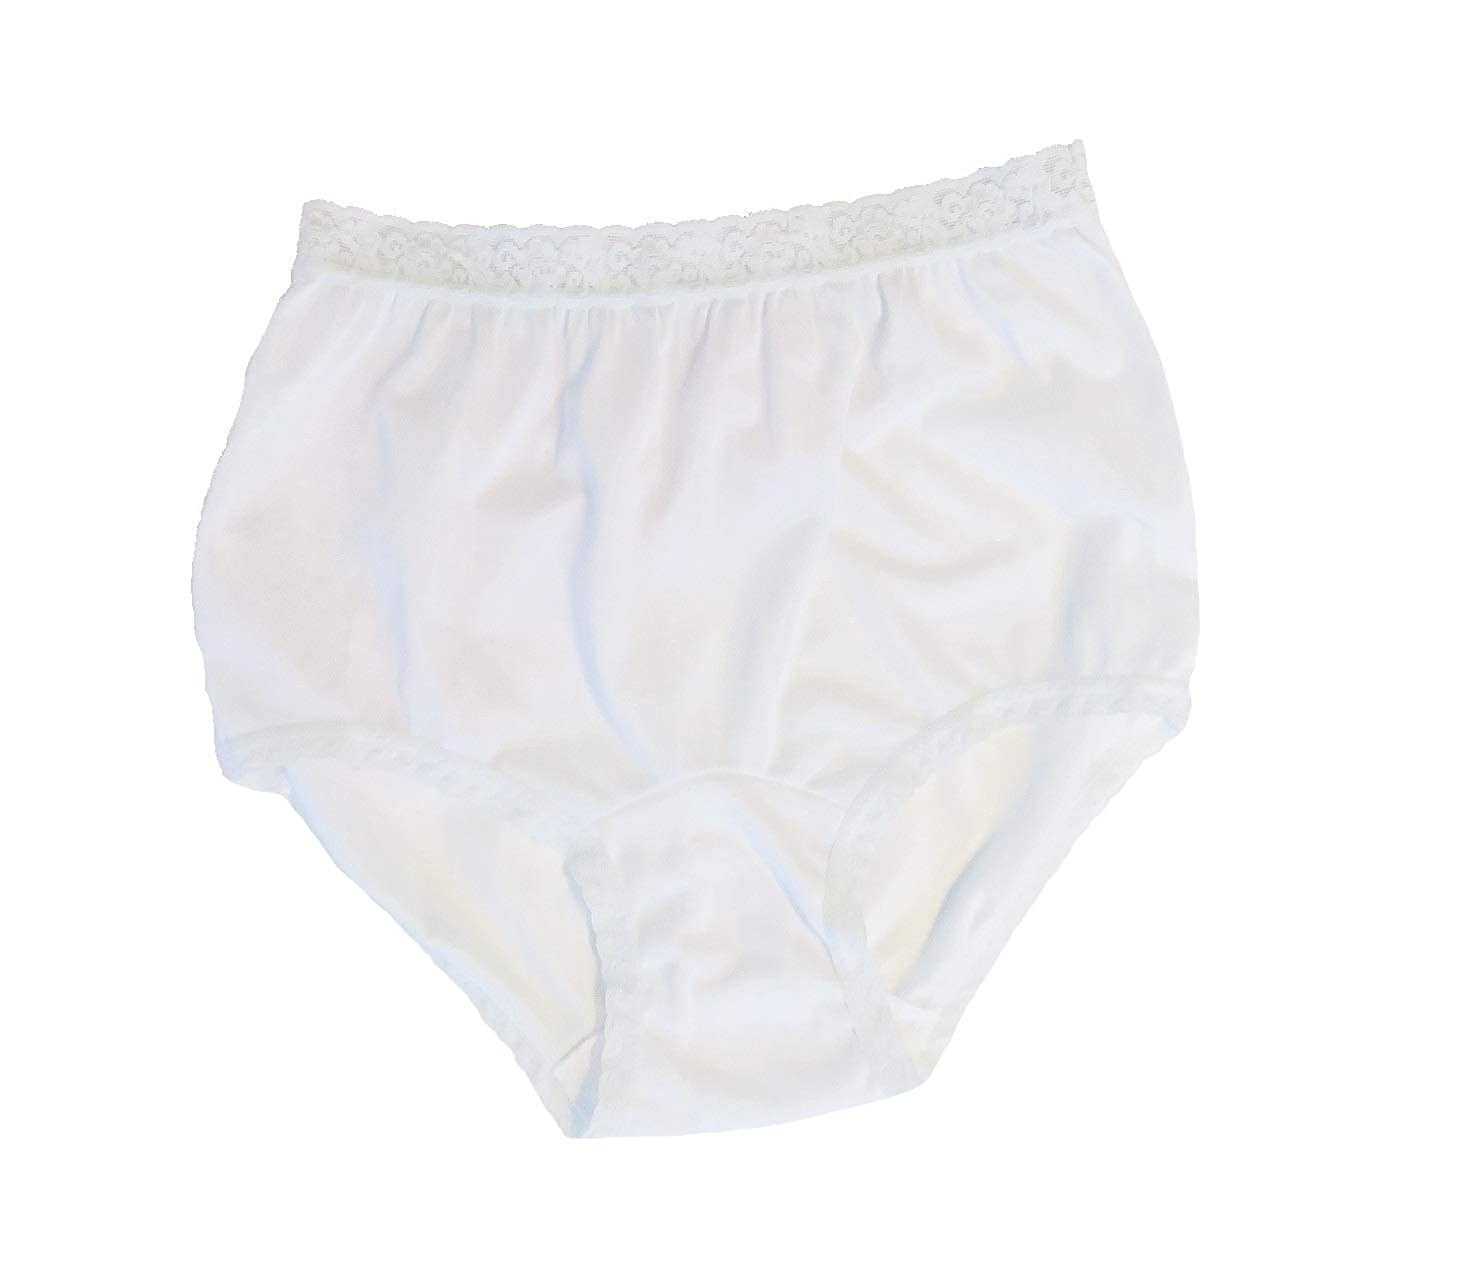 0002818f221 Carole Women s Nylon Lace Trim Panties Full Cut Briefs - Pack of 3 at Amazon  Women s Clothing store